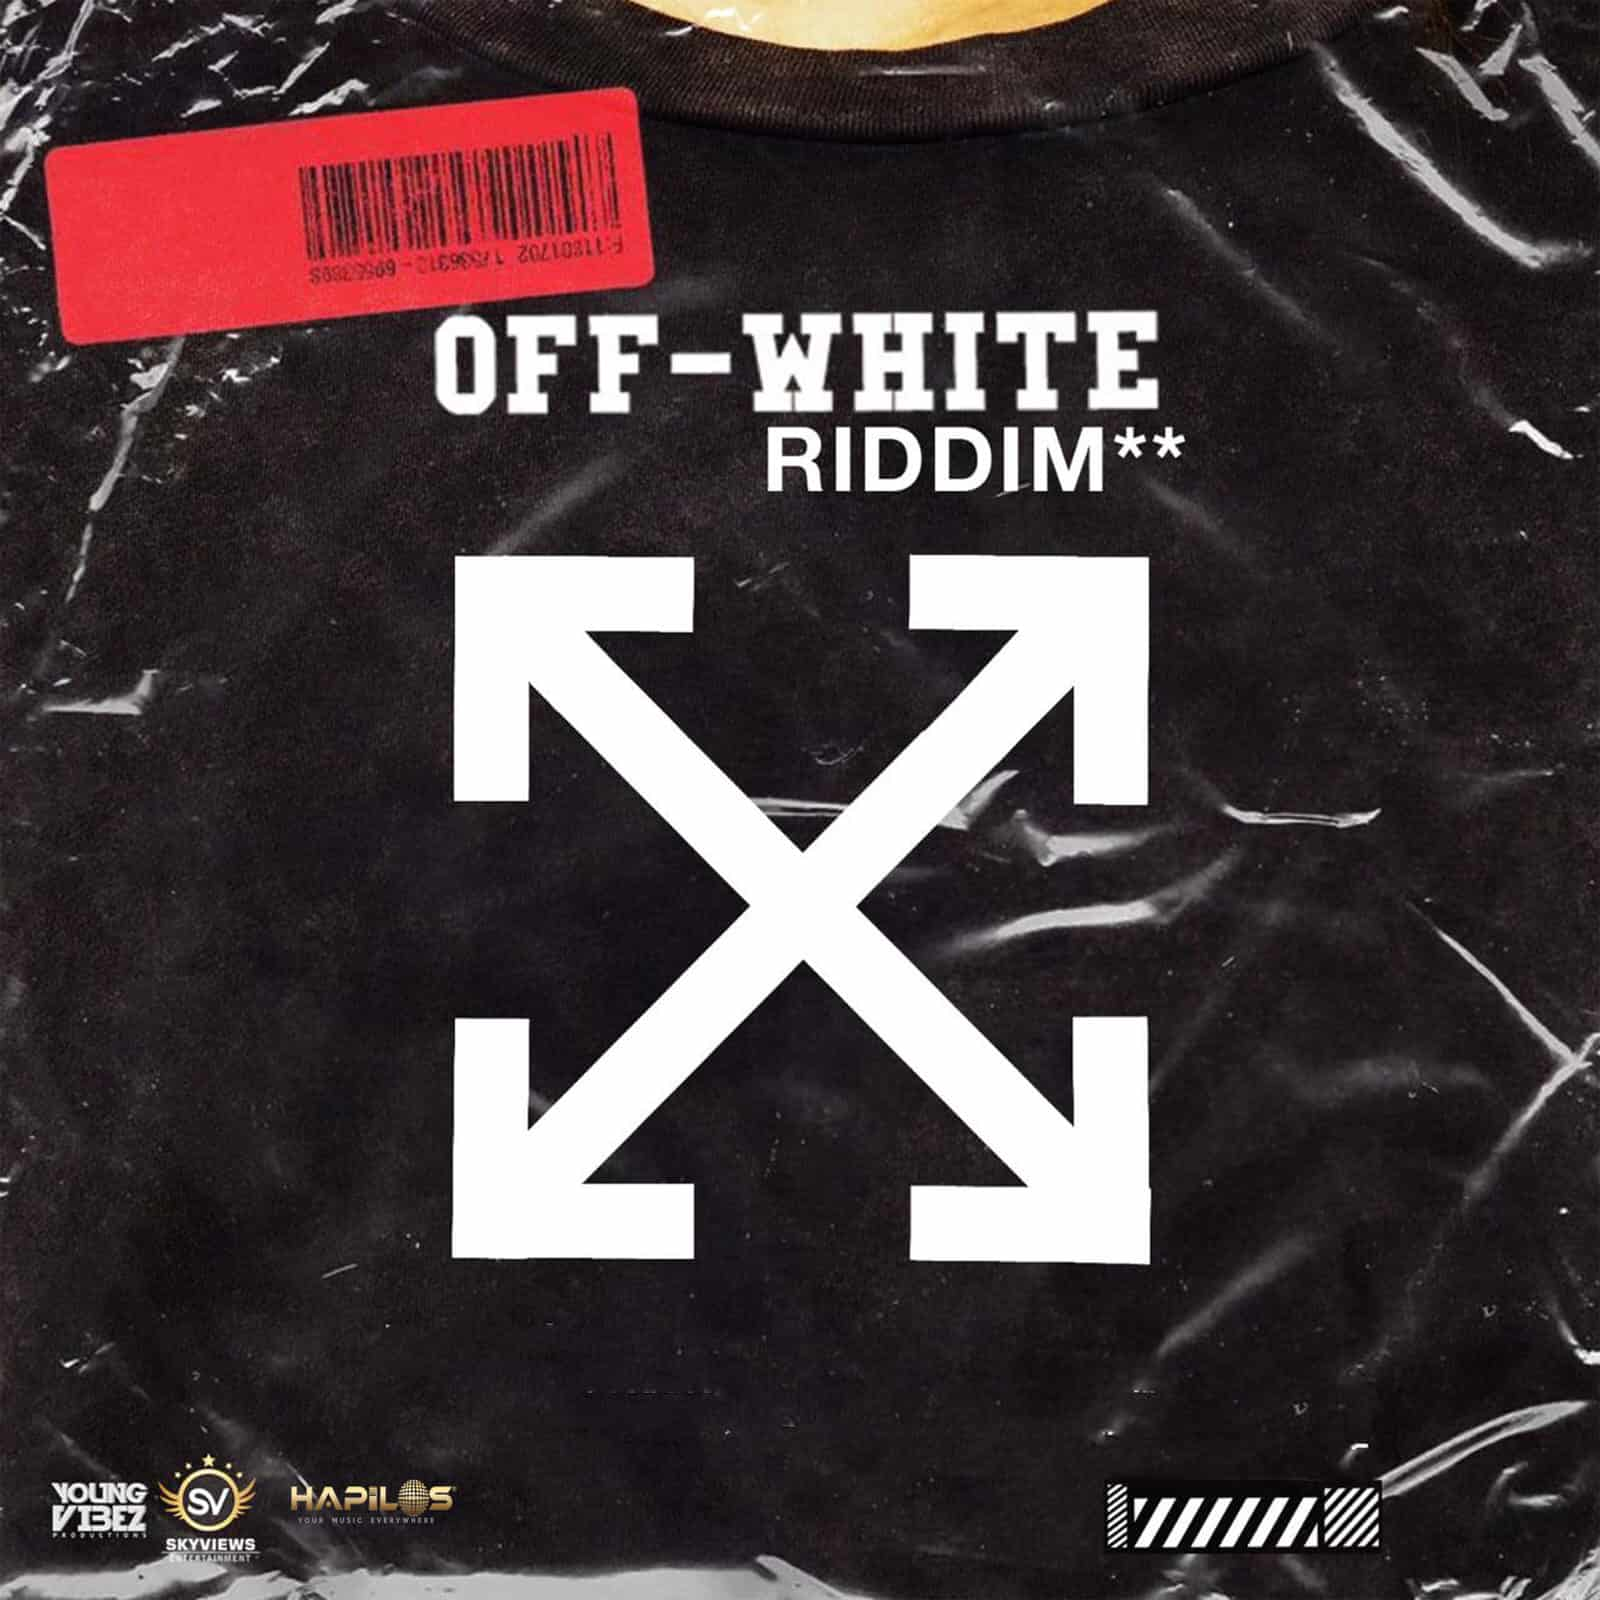 Off-White Riddim - Young Vibez Production